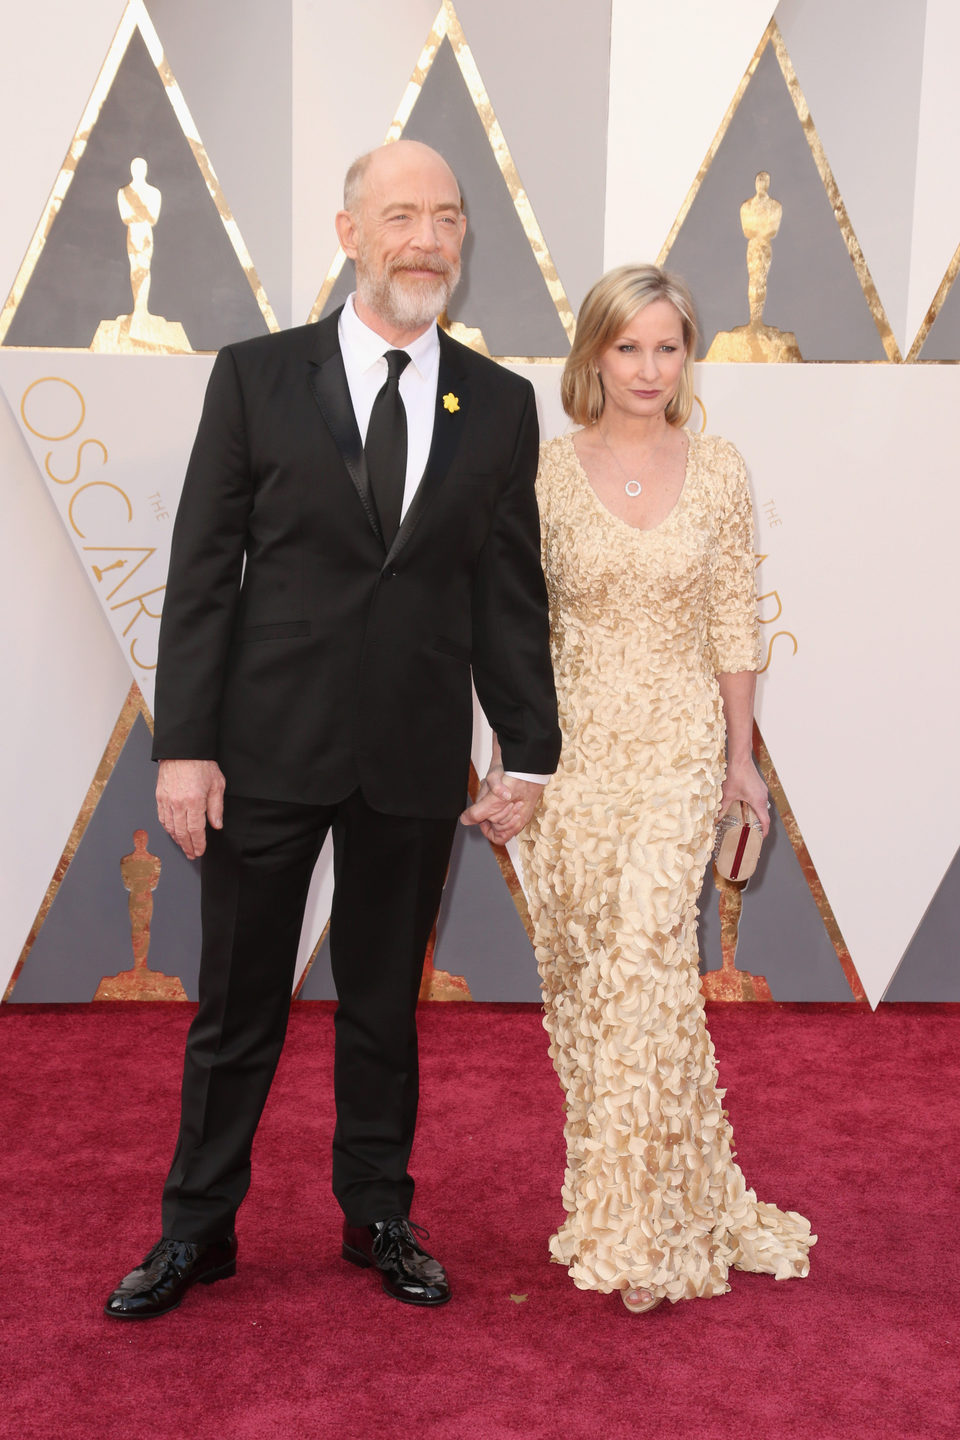 J. K. Simmons at the Oscars 2016 red carpet